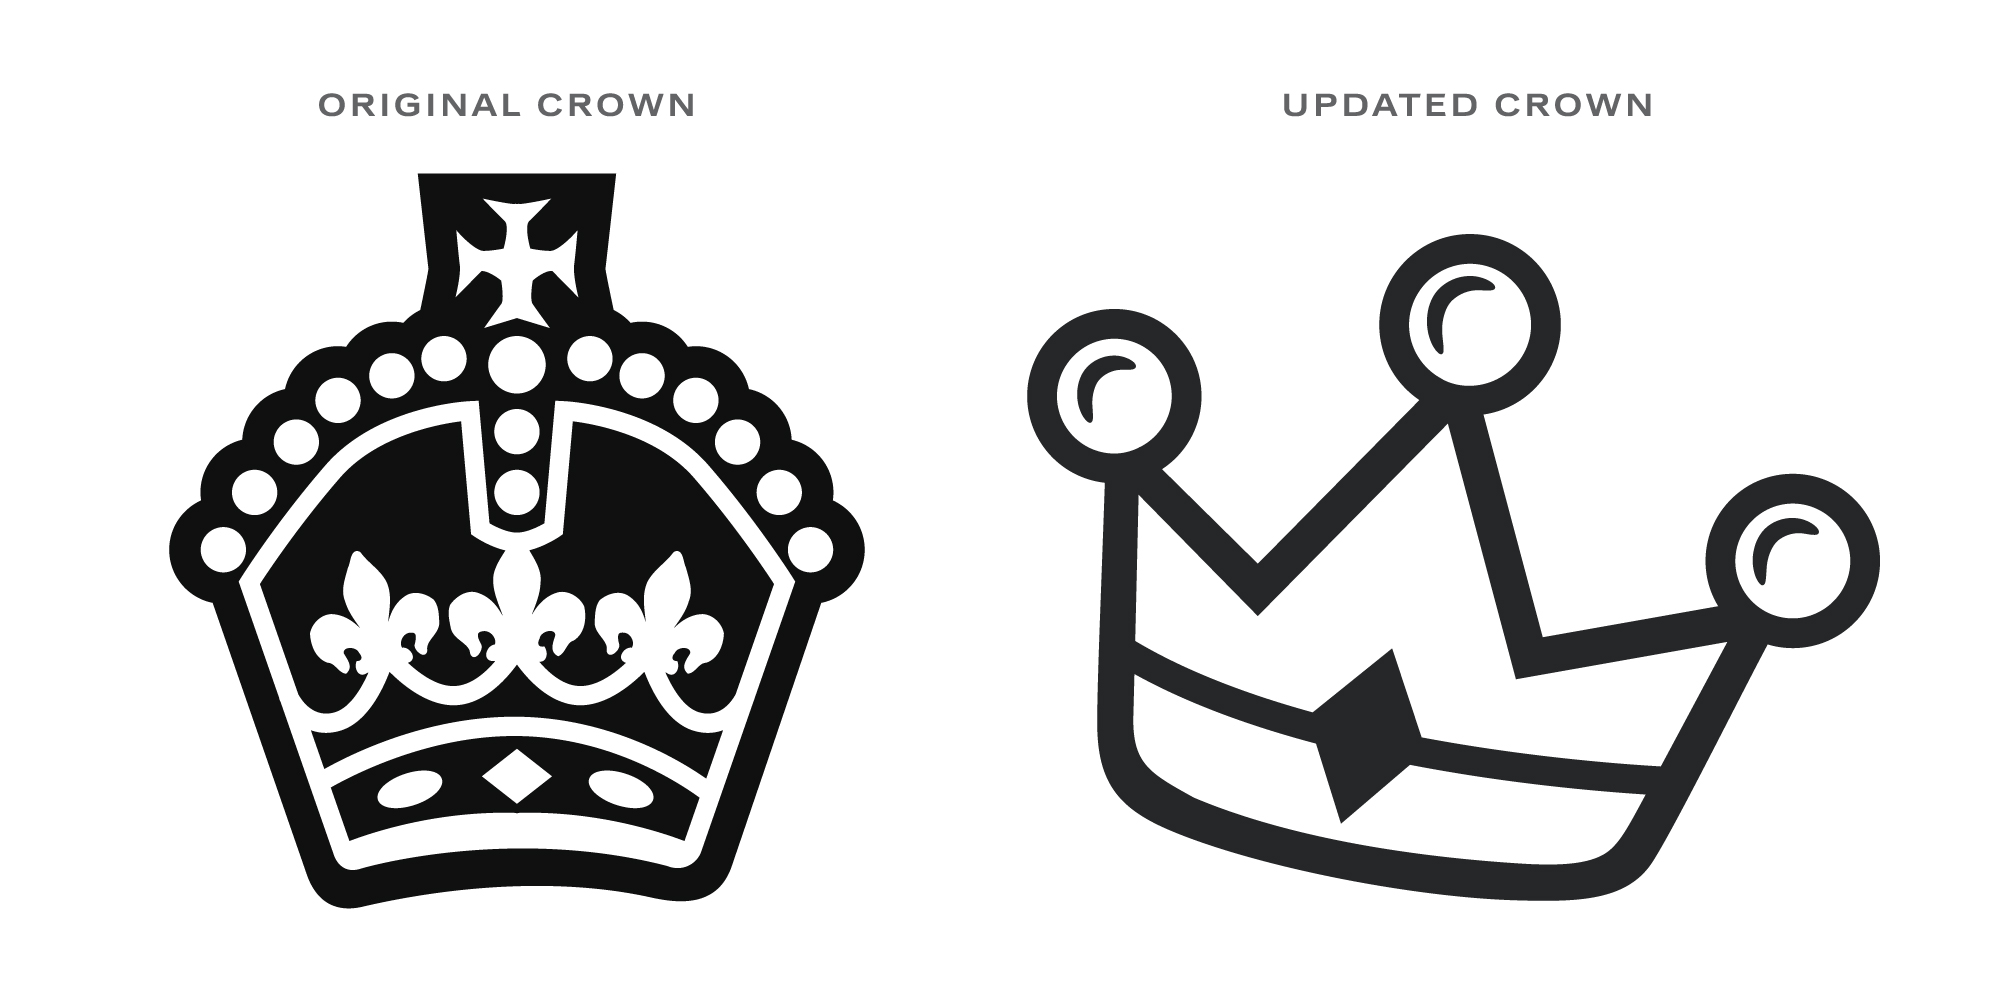 crowncomparison